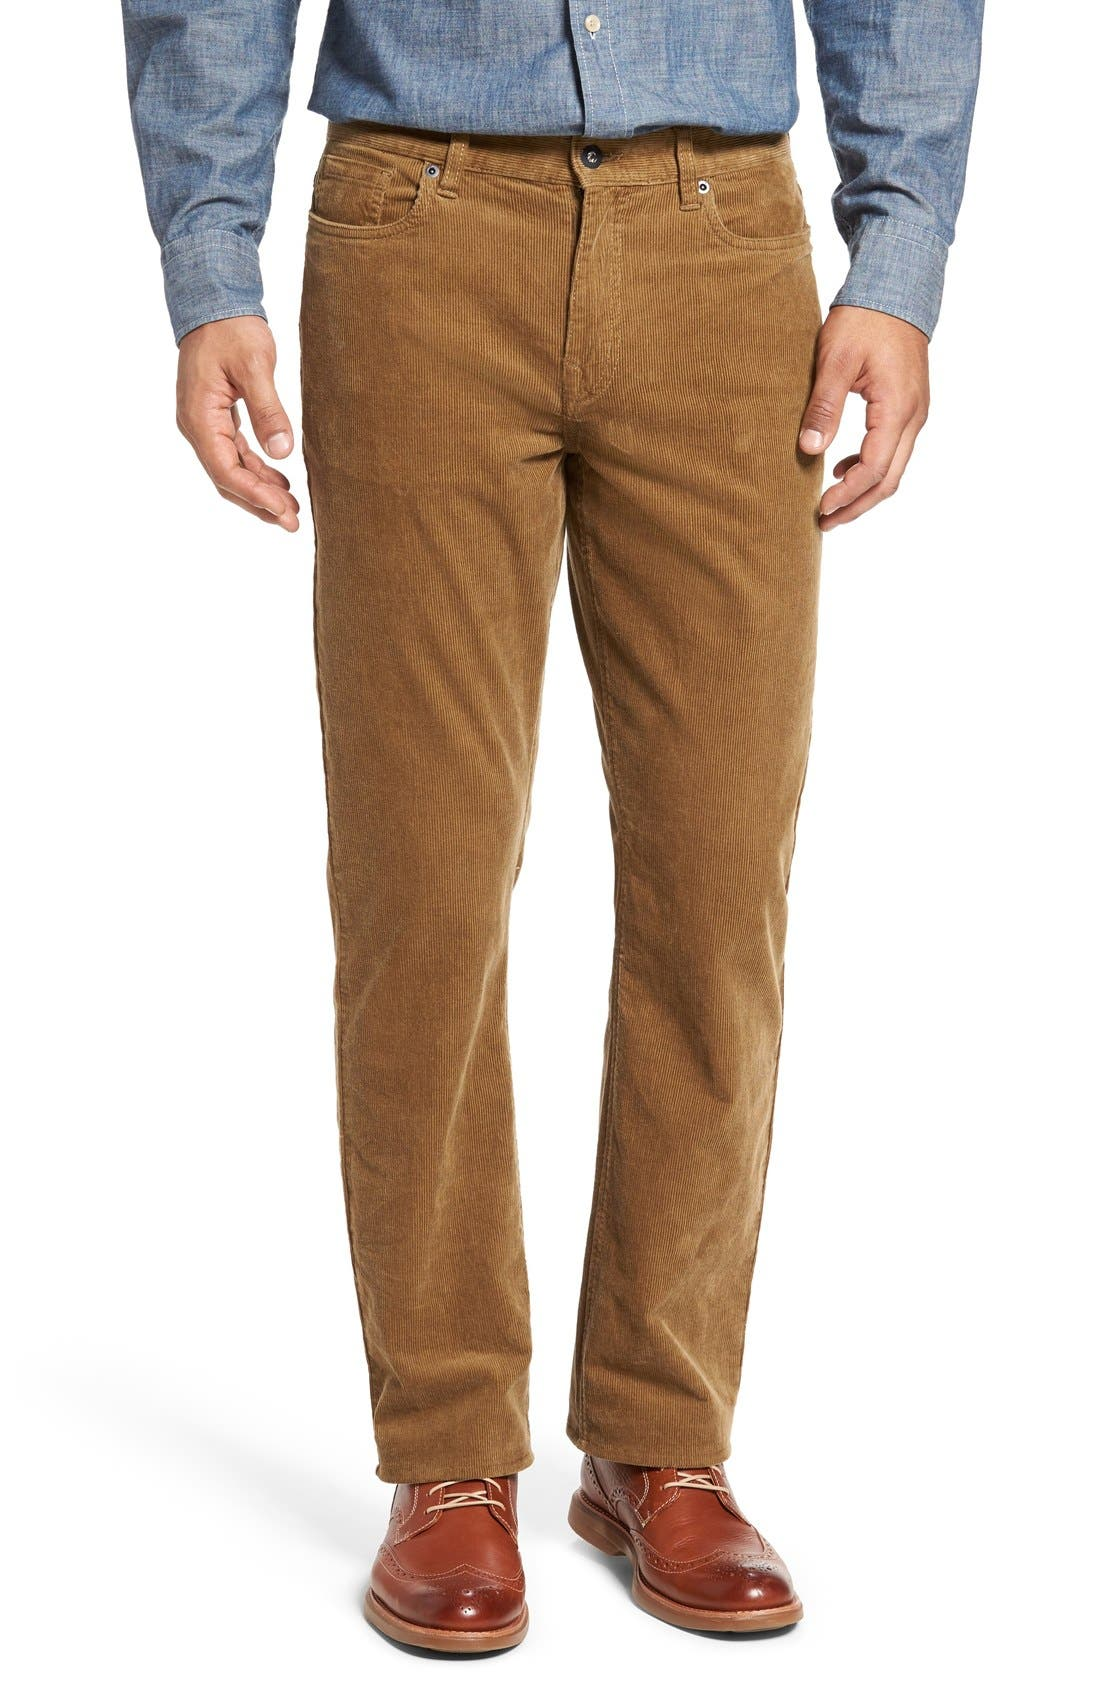 Cutter & Buck 'Greenwood' Stretch Corduroy Pants (Big & Tall)